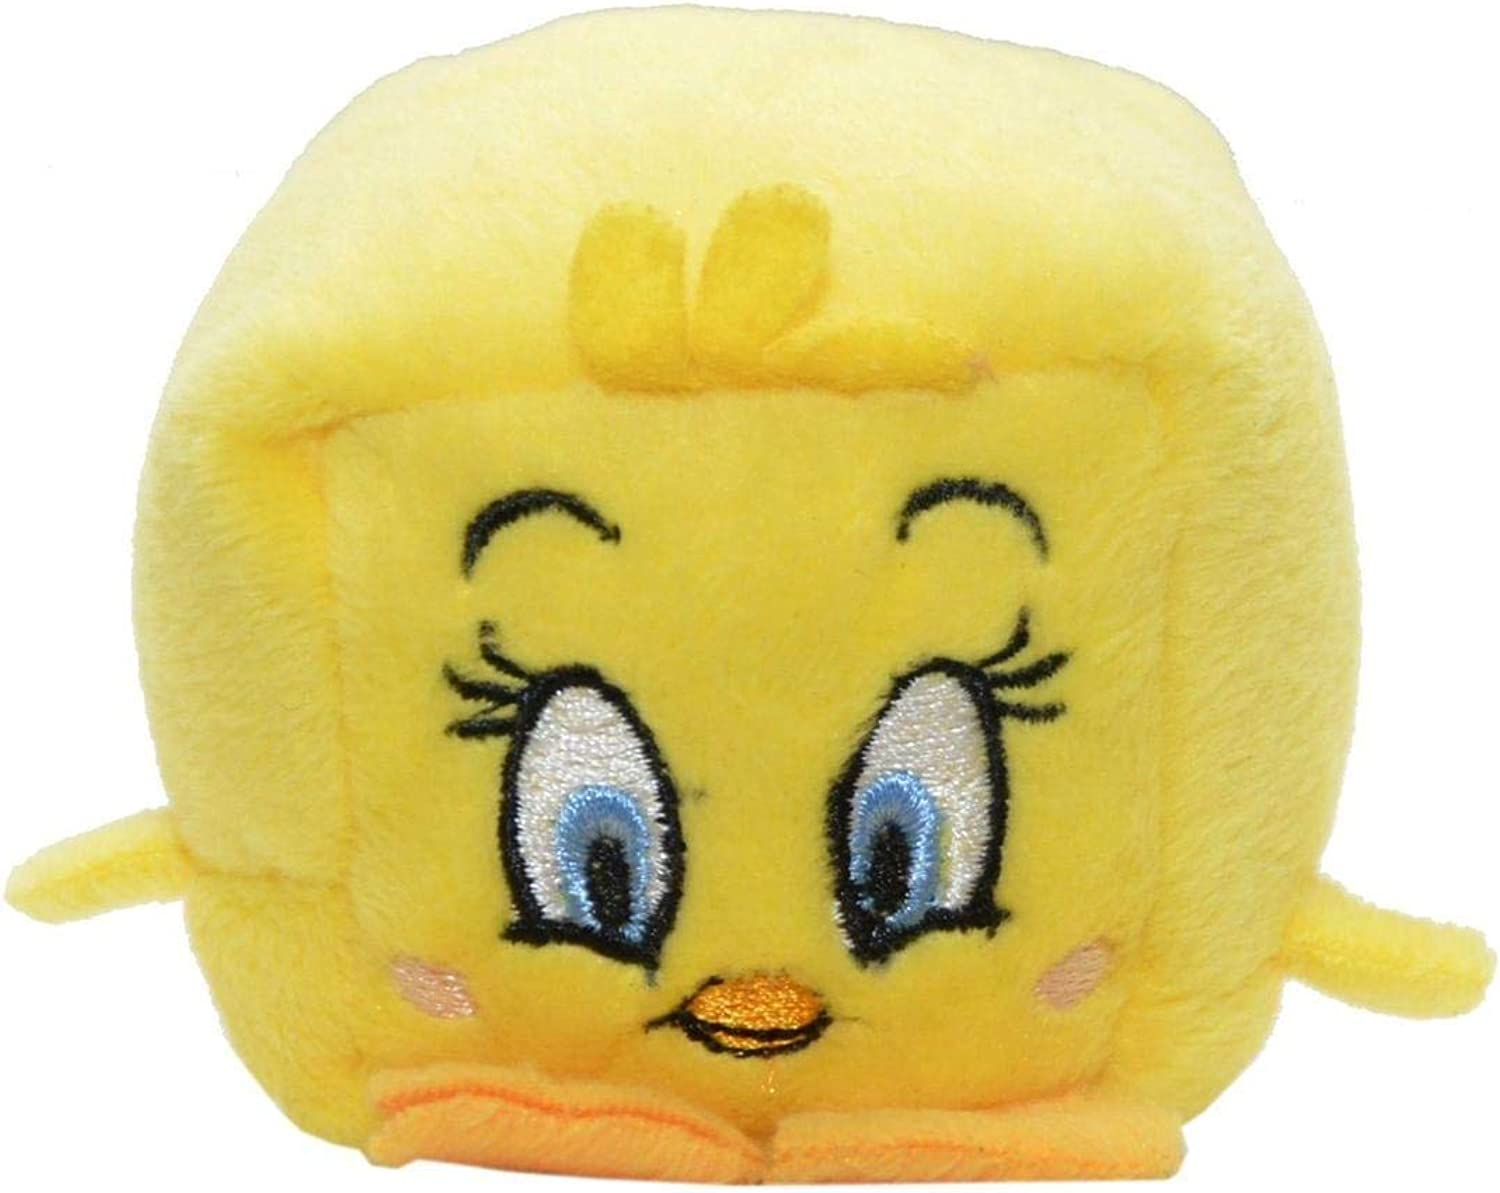 WB Character Kawaii Cubes 2.25  Plush  Tweety Bird